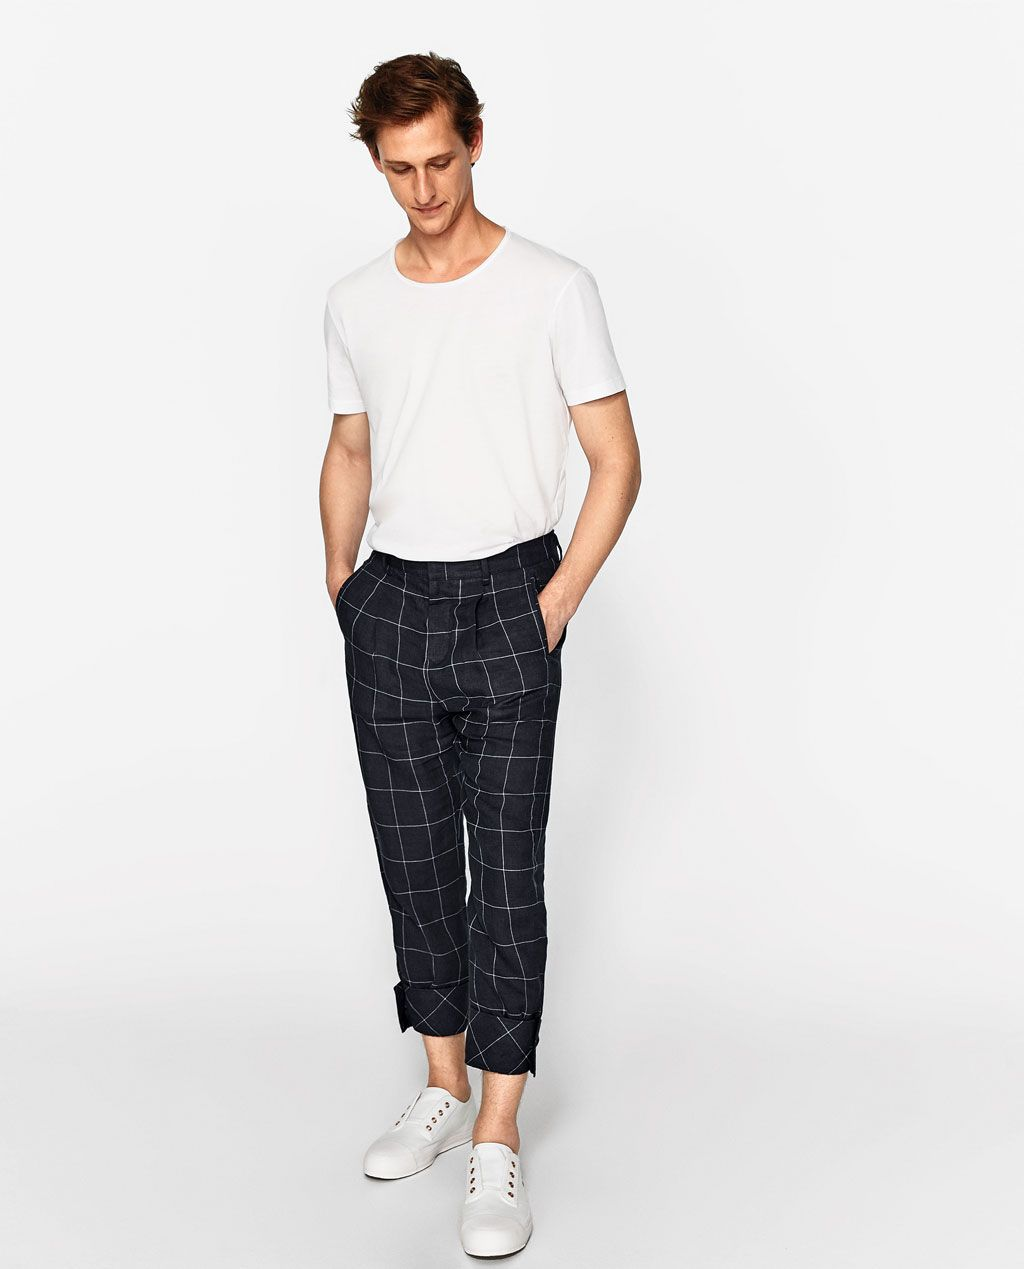 Zara flannel shirt mens  Image  of CHECKED STUDIO TROUSERS from Zara  Stylis  actions